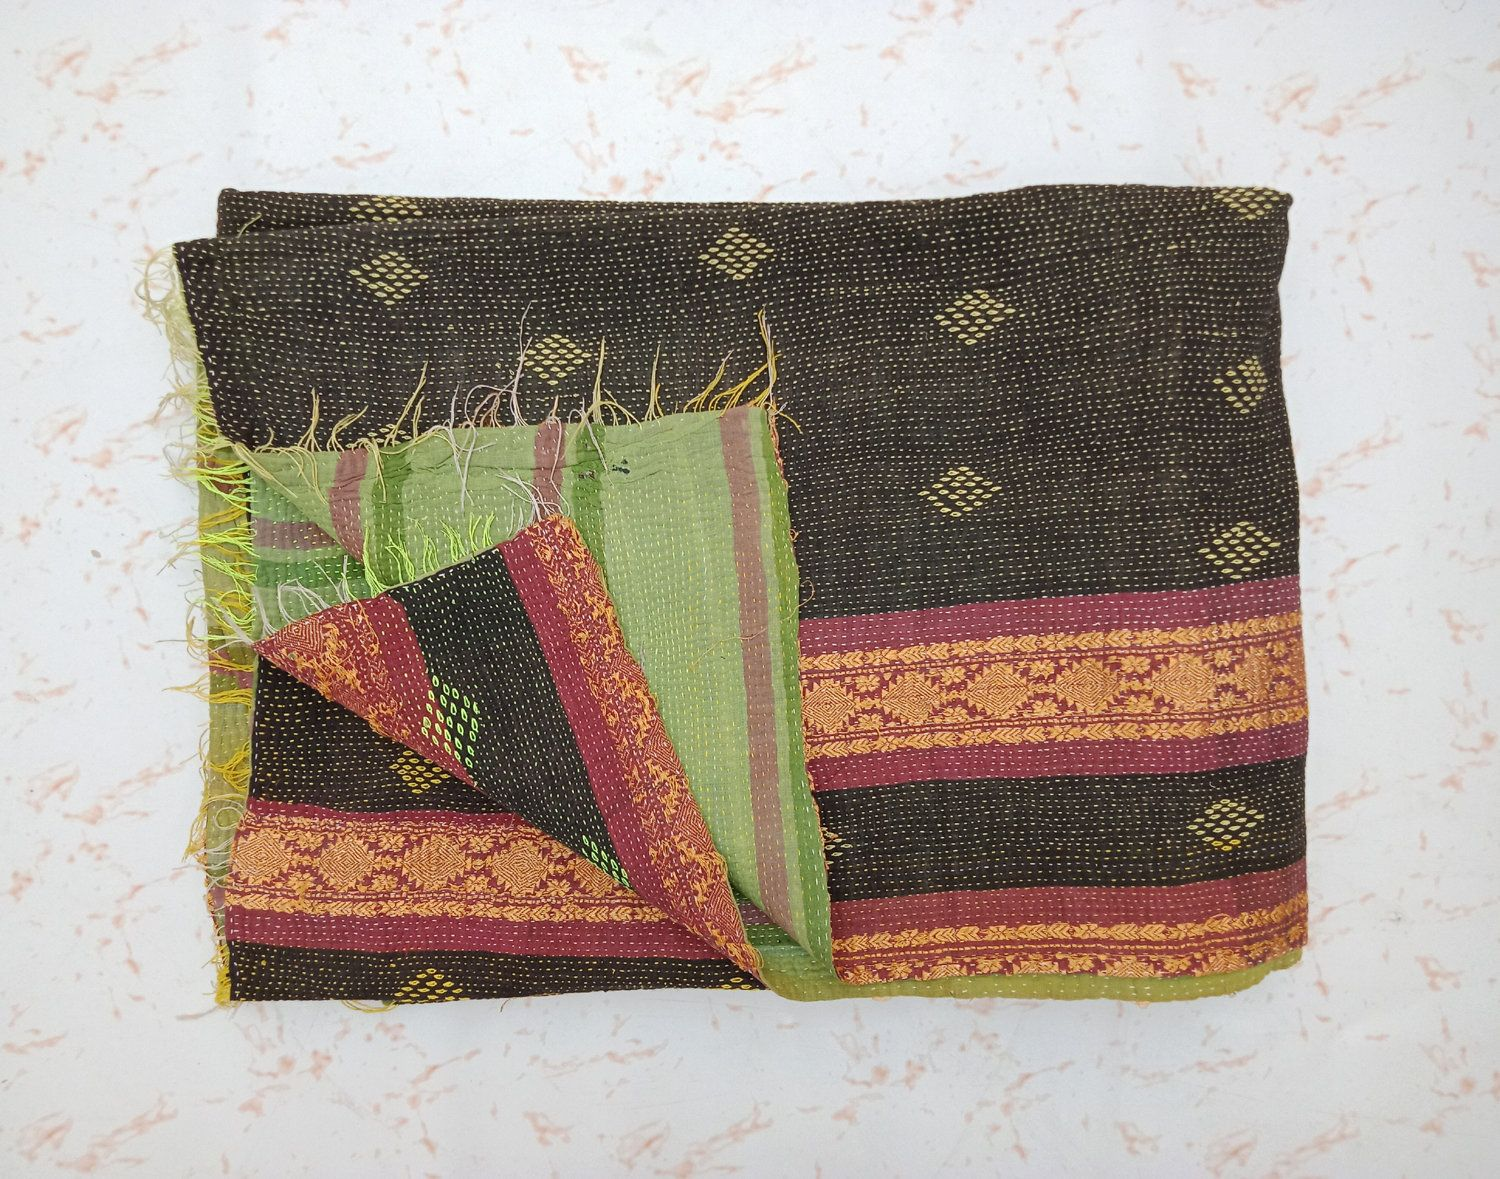 Vintage Kantha Quilts Blanket And Throw Embroidered Quilts Handmade Wall Hanging Amazing Bedding Home Decor Gift Reversible Quilt Tapestry